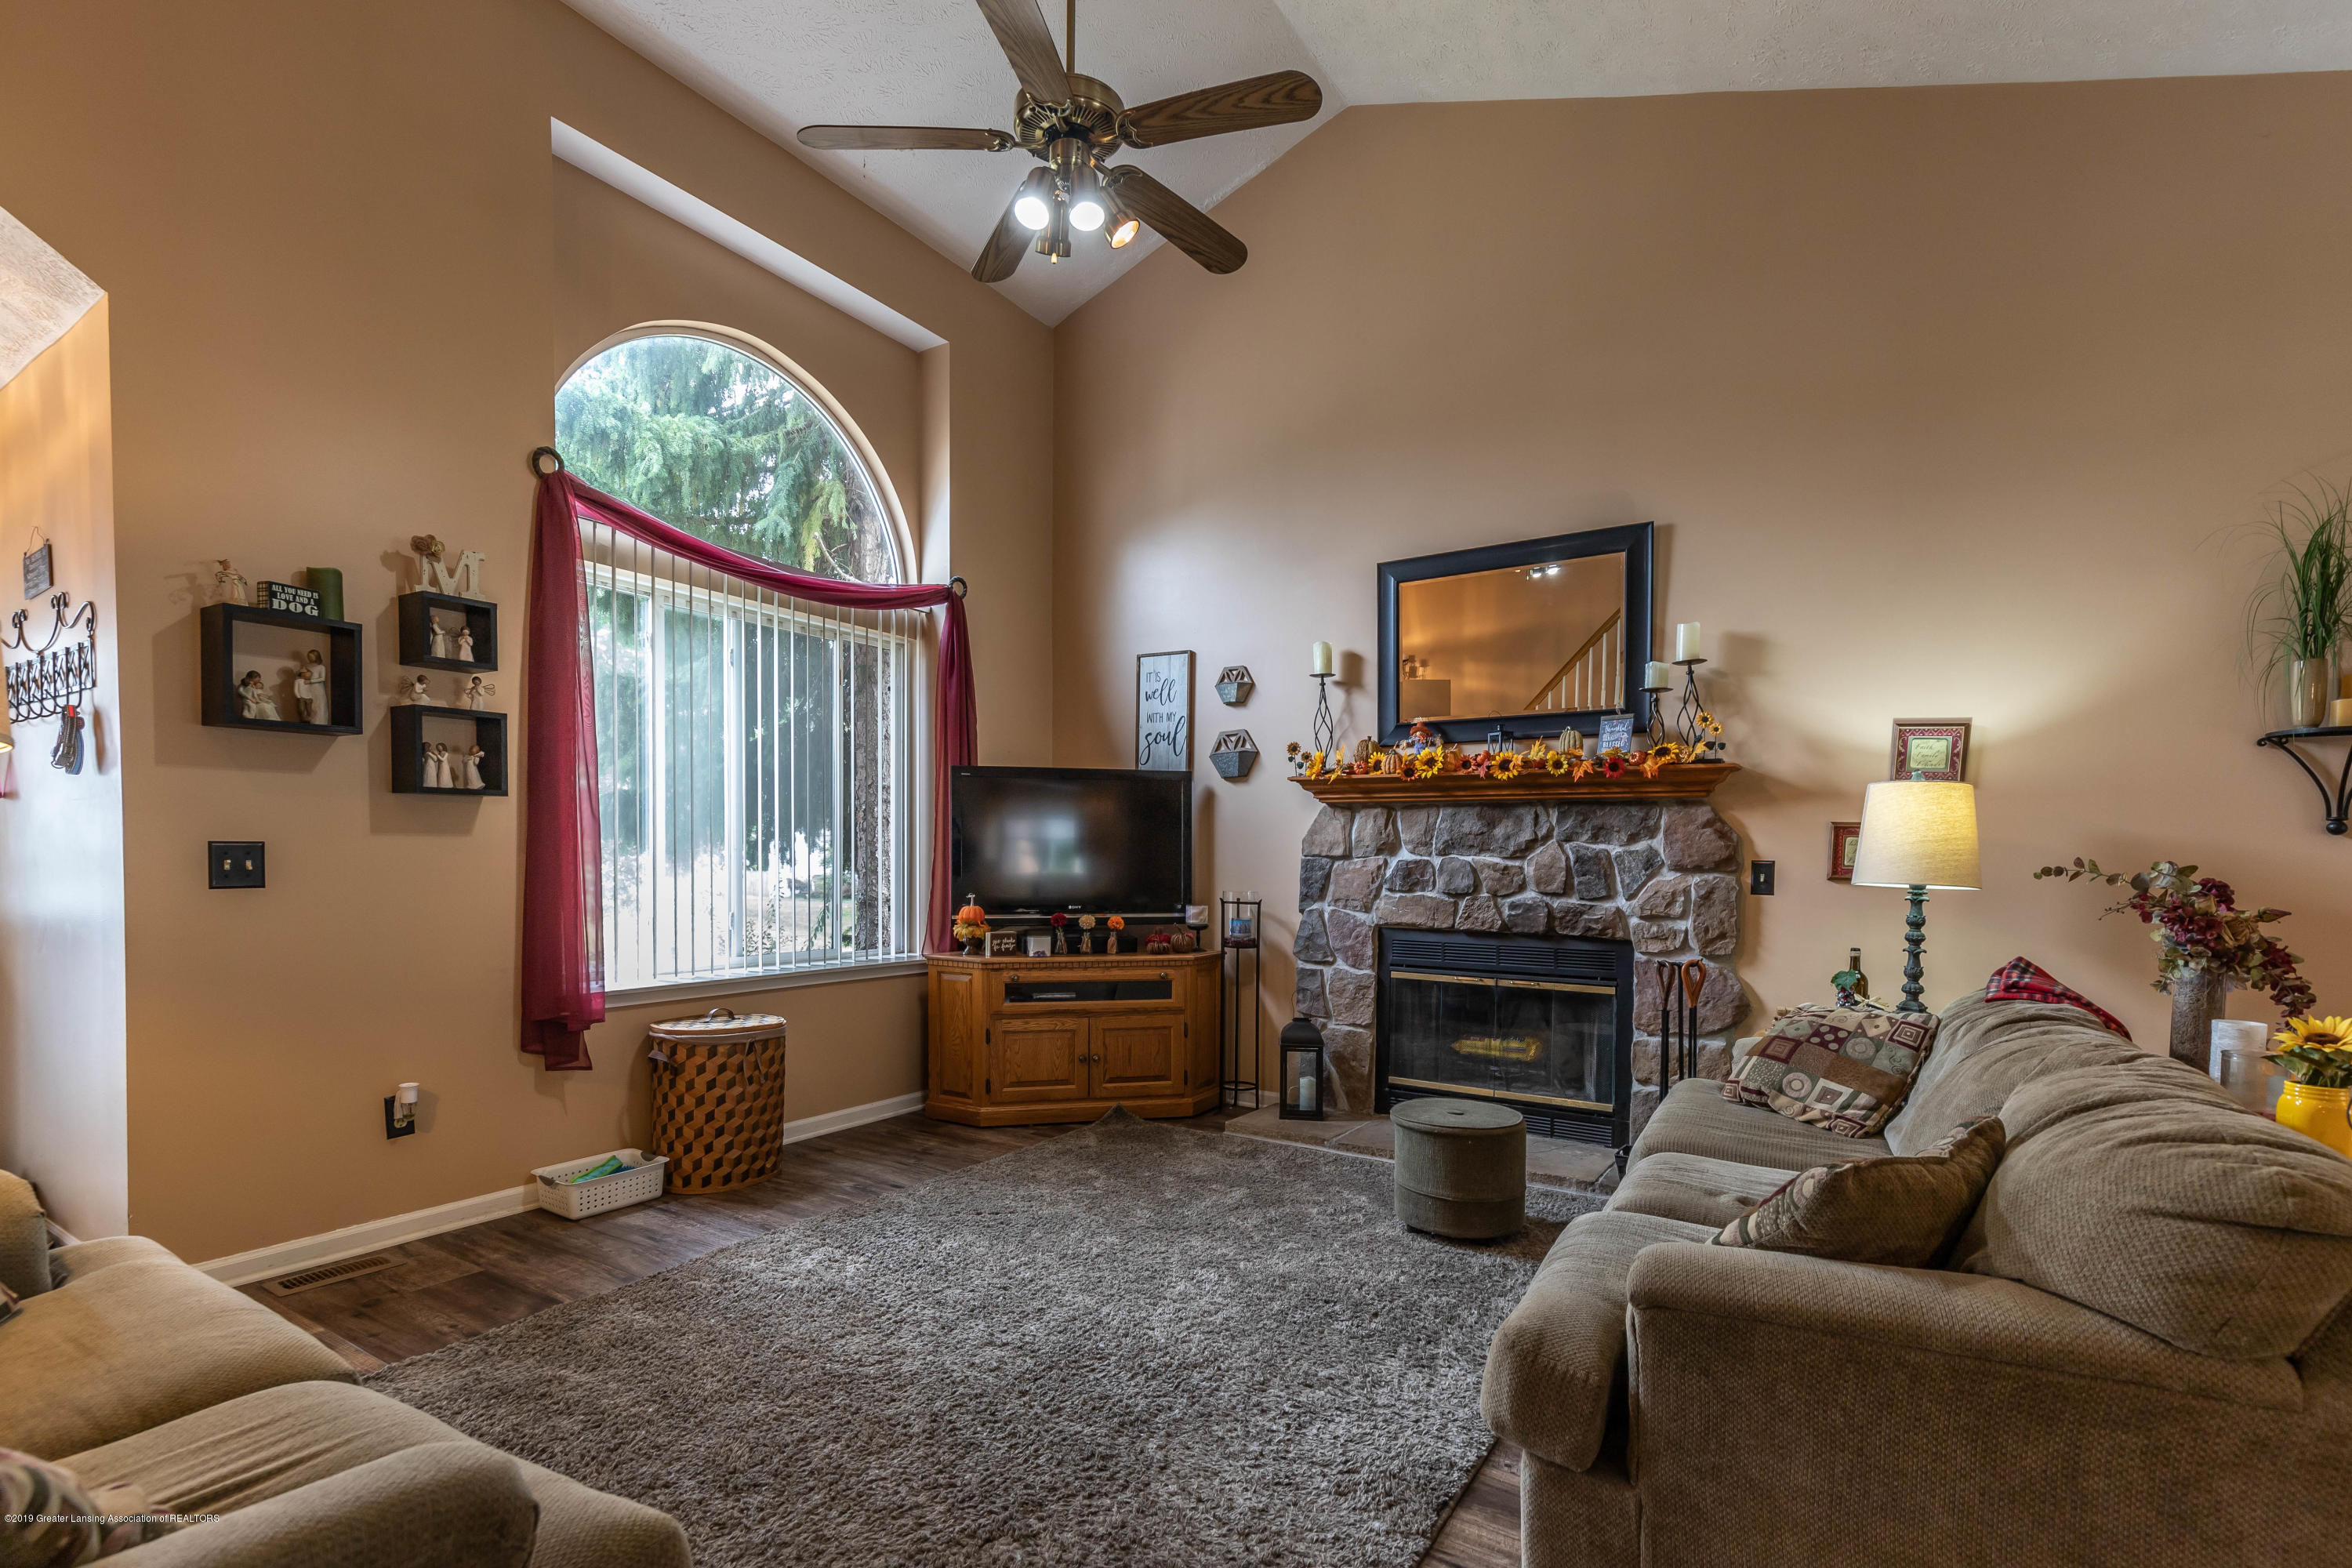 501 Winding River Dr 56 - windingliving (1 of 1) - 4